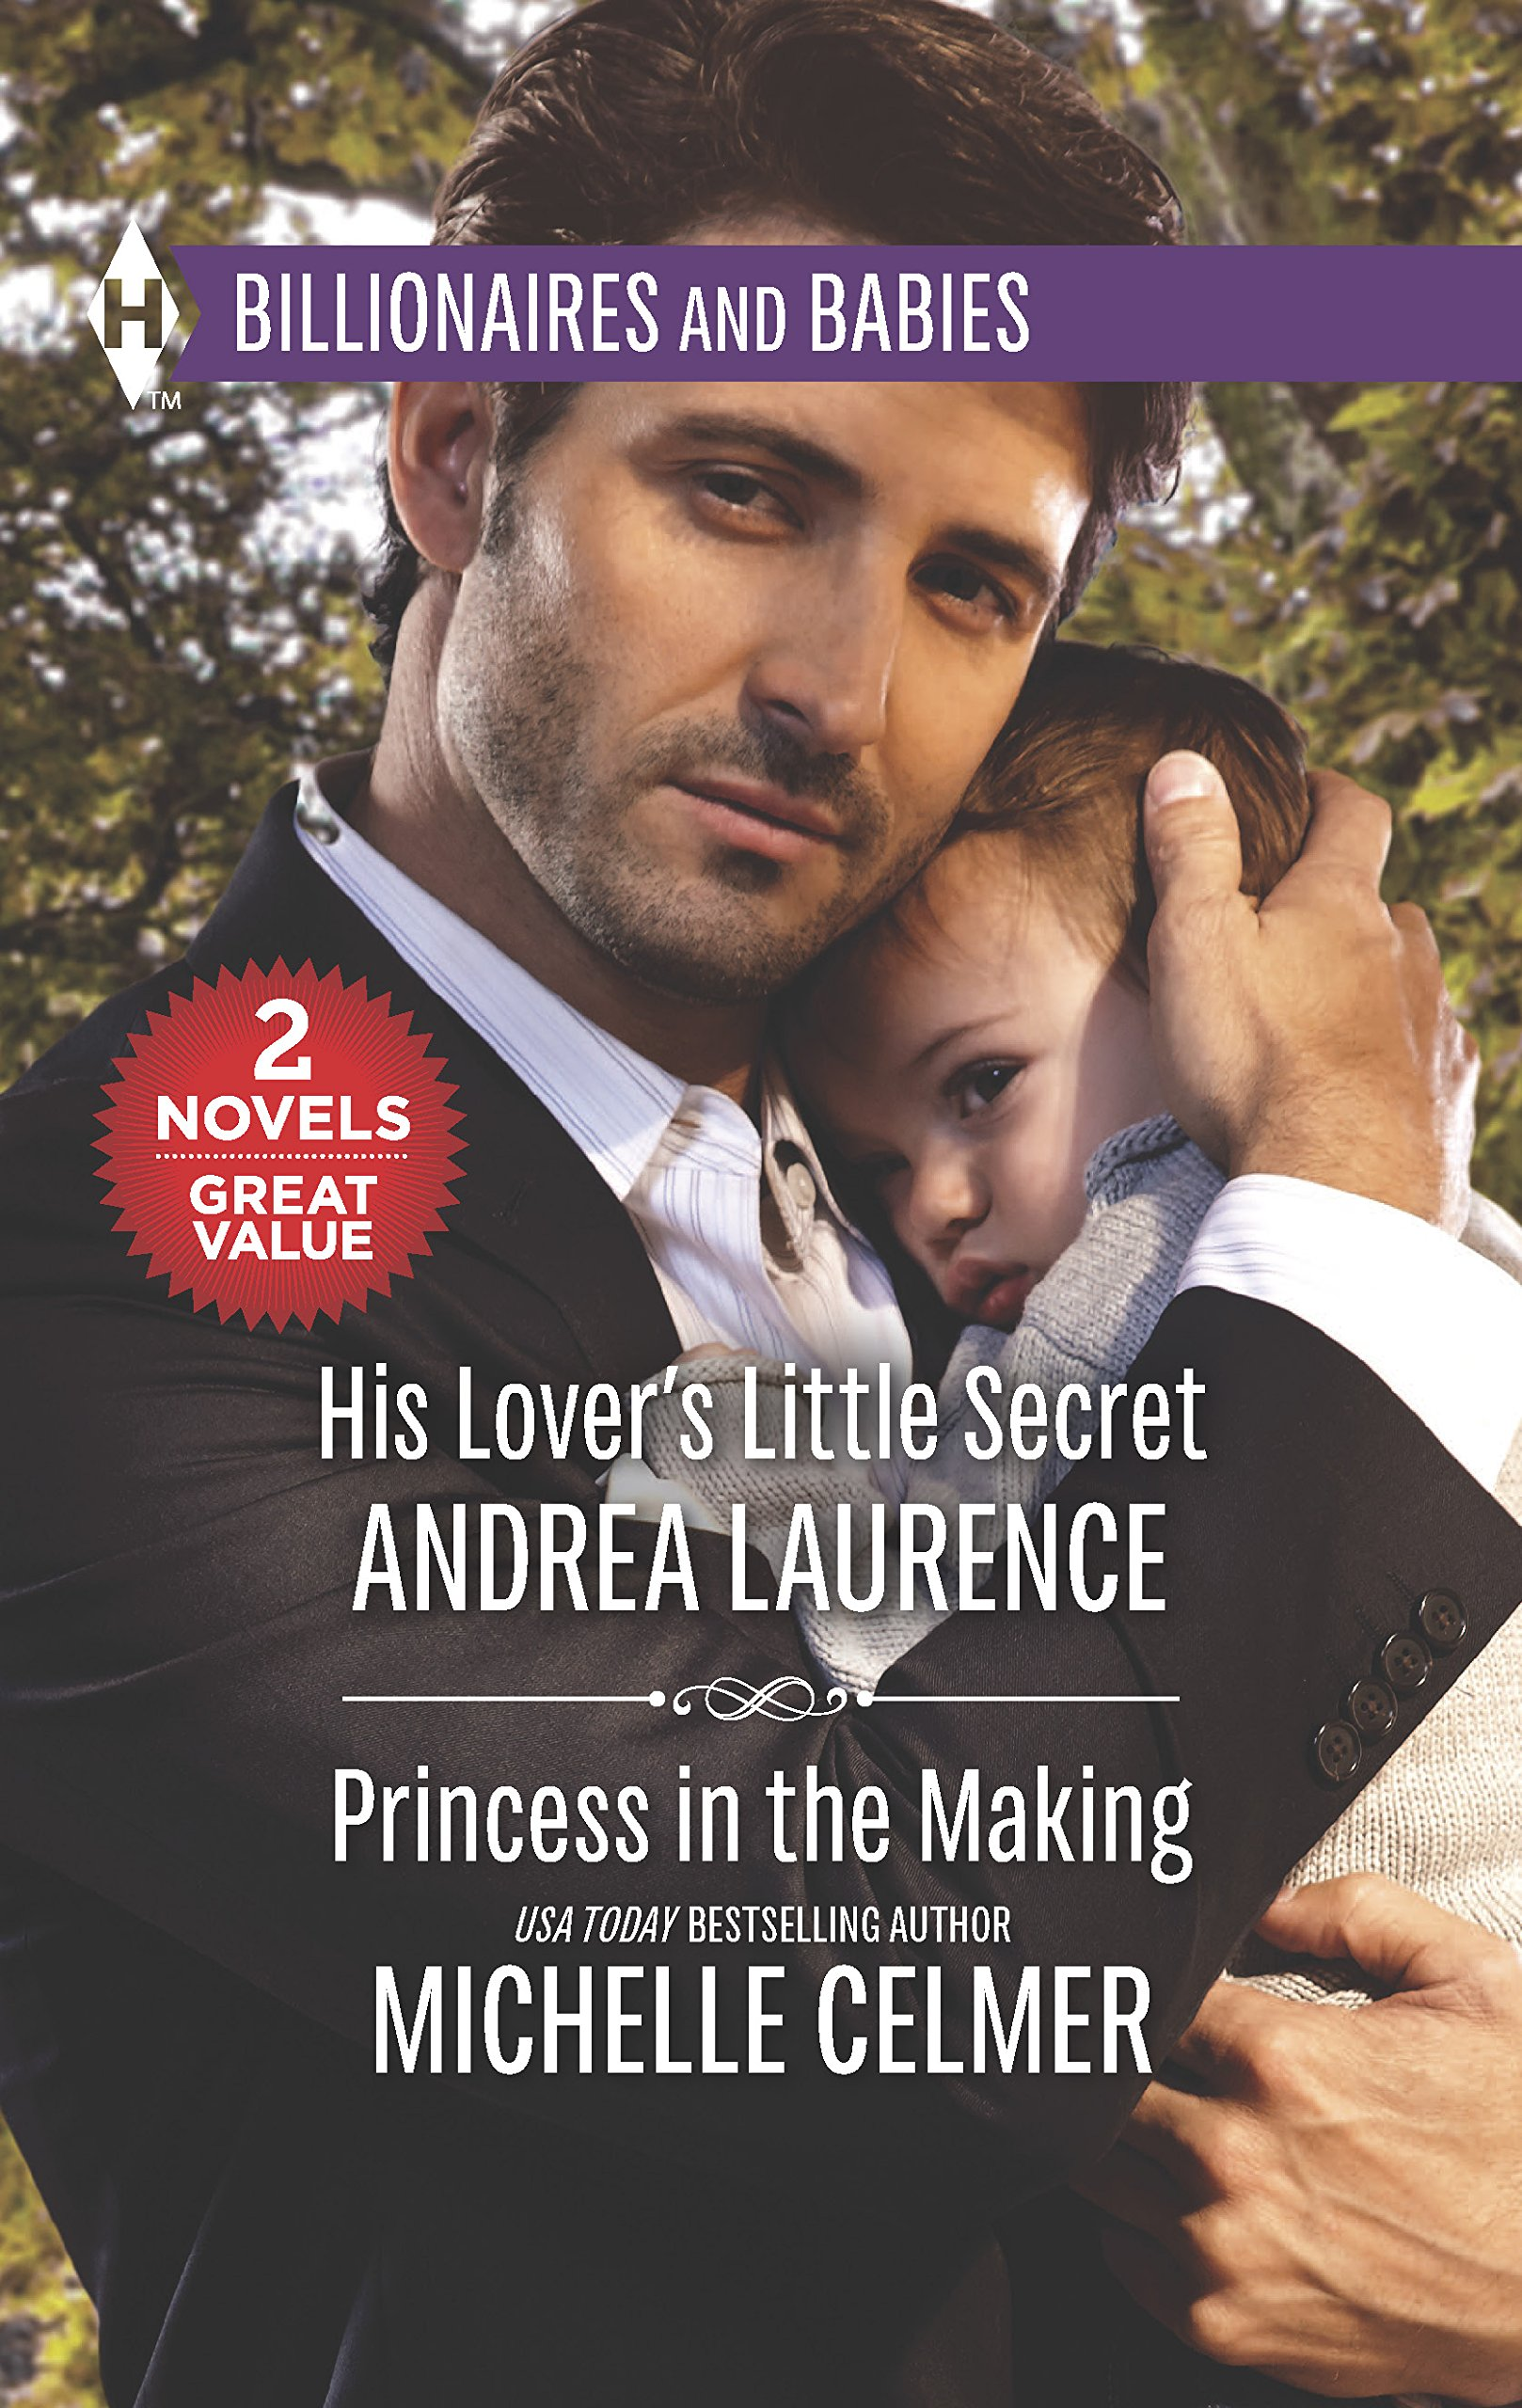 Download His Lover's Little Secret & Princess in the Making (Harlequin Billionaires and Babies Collection) PDF